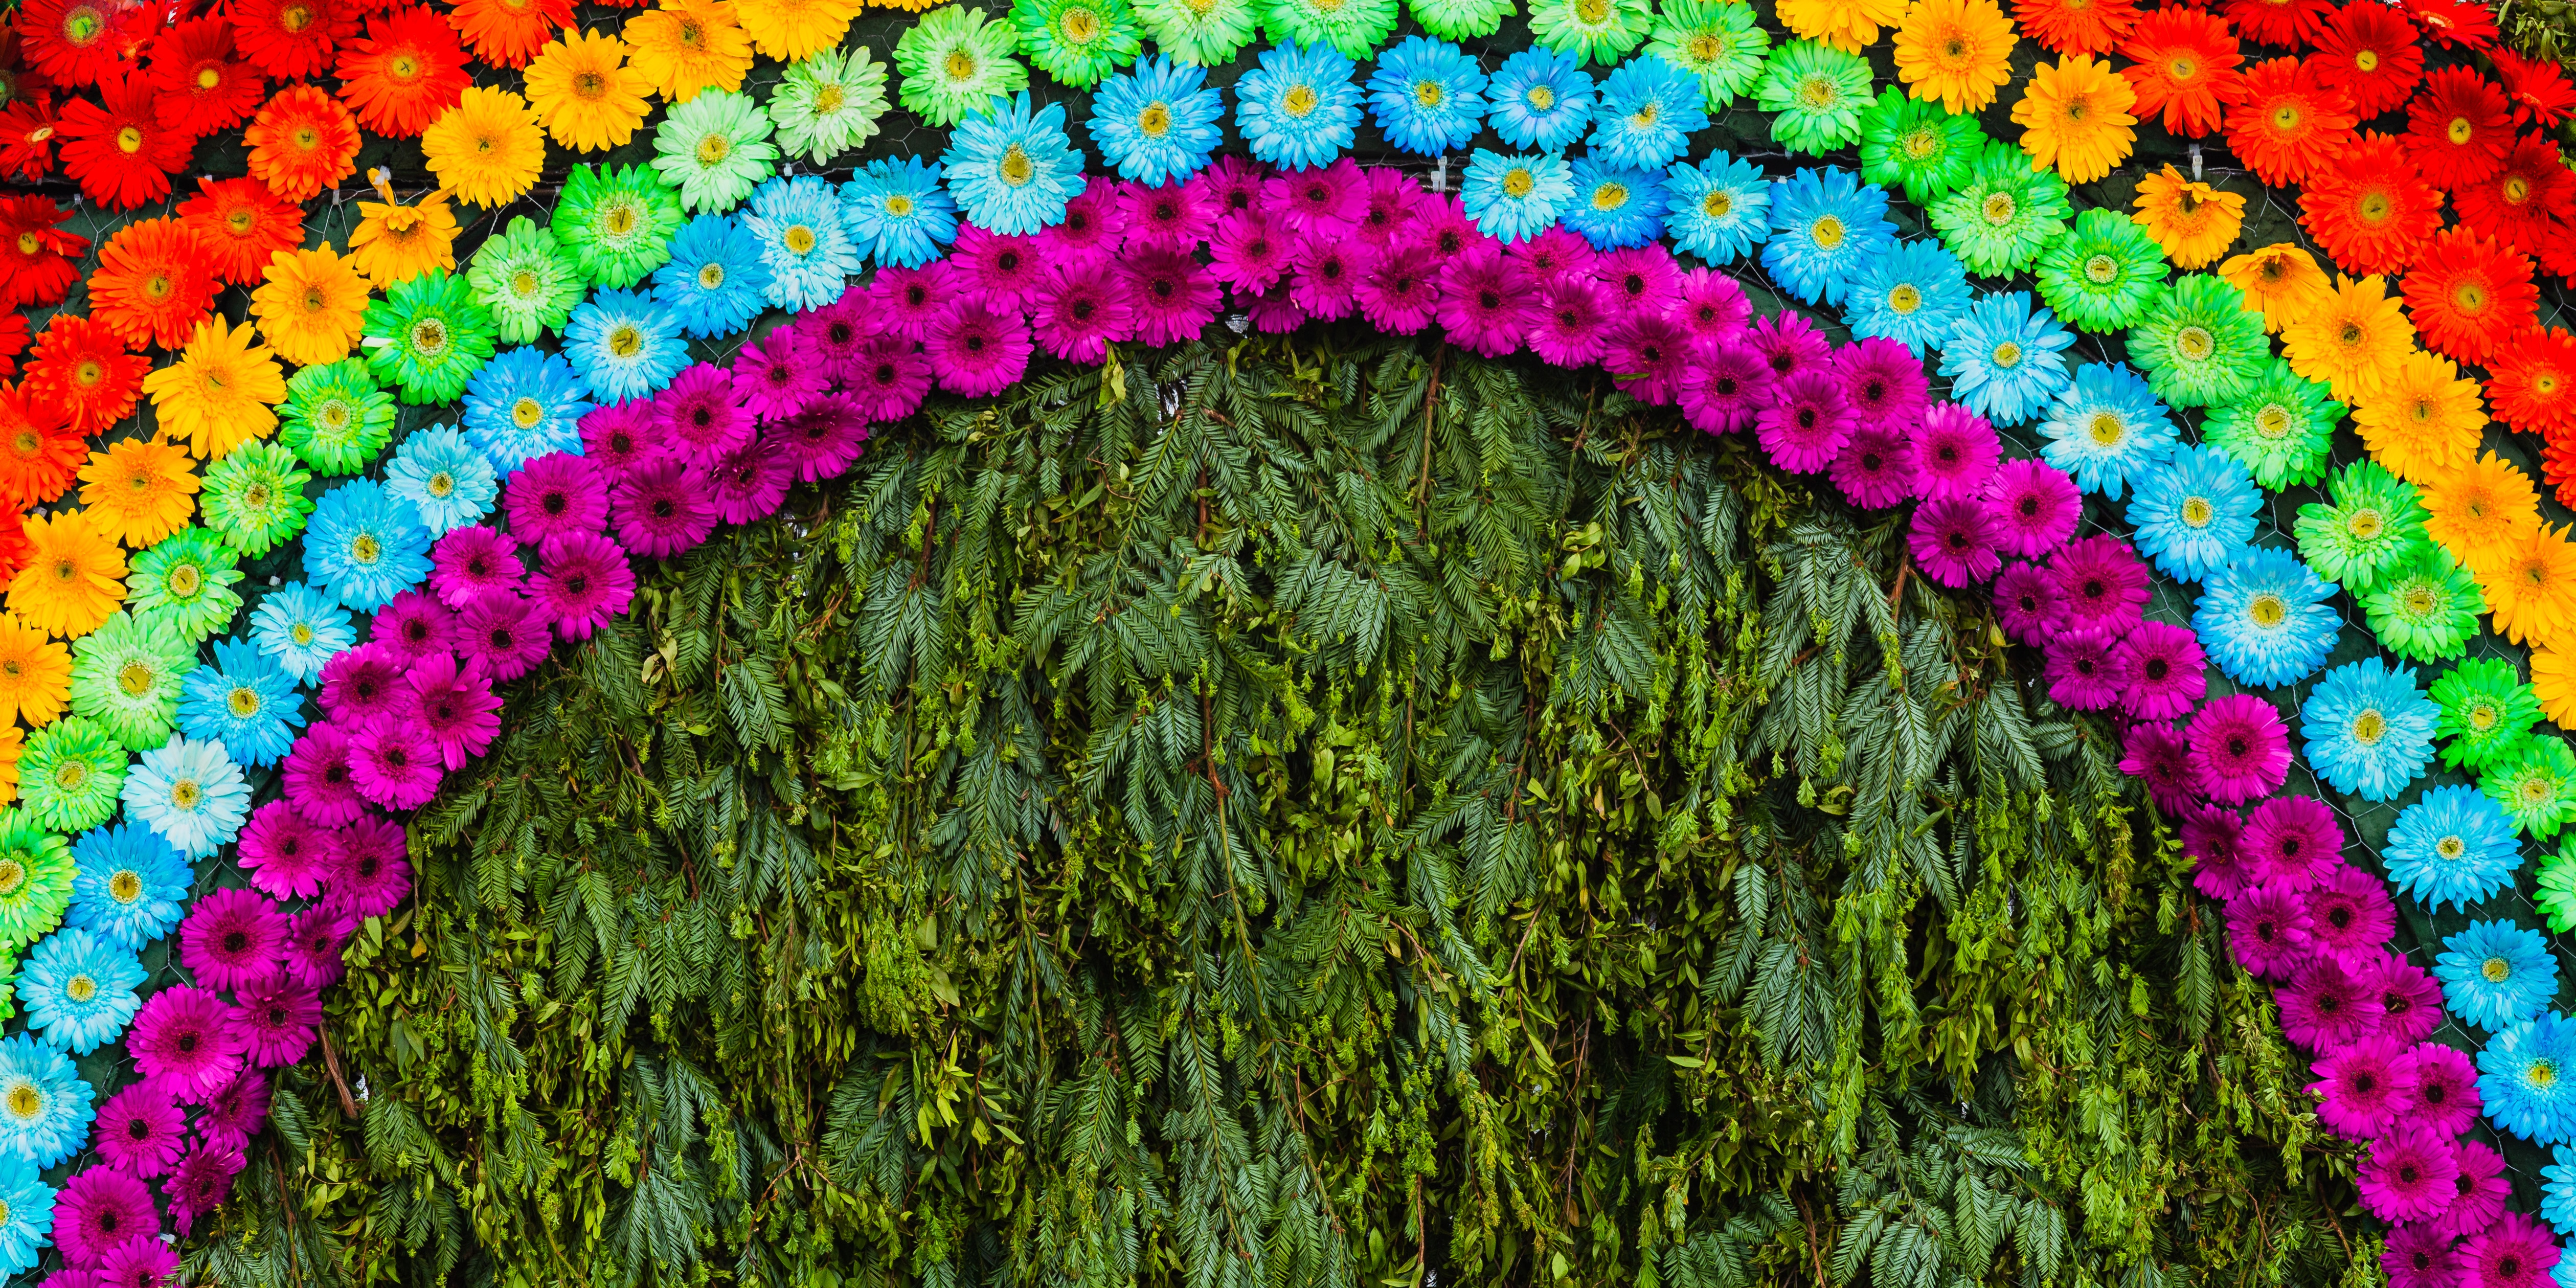 Floral rainbow made with purple, blue, green, yellow, orange and red daisy gerbera flower in Madeira Flower Festival, Madeira island, Portugal